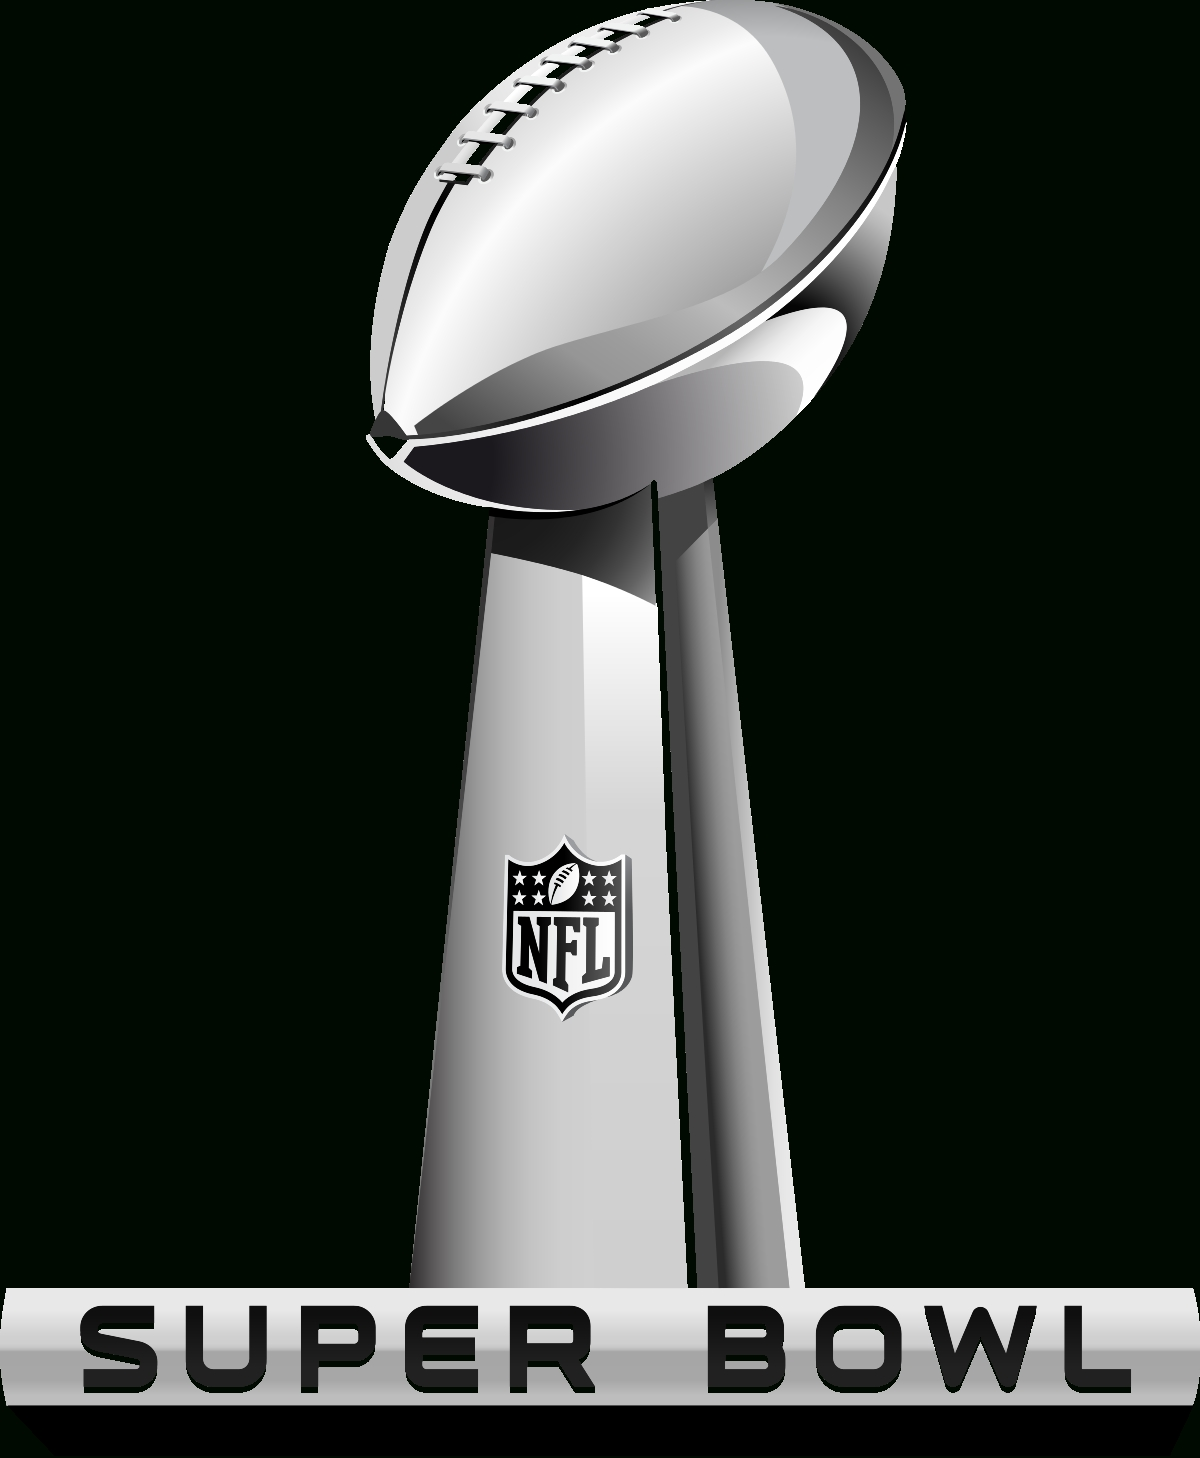 Super Bowl - Wikipedia intended for Minimum Seating Capacity For Super Bowl